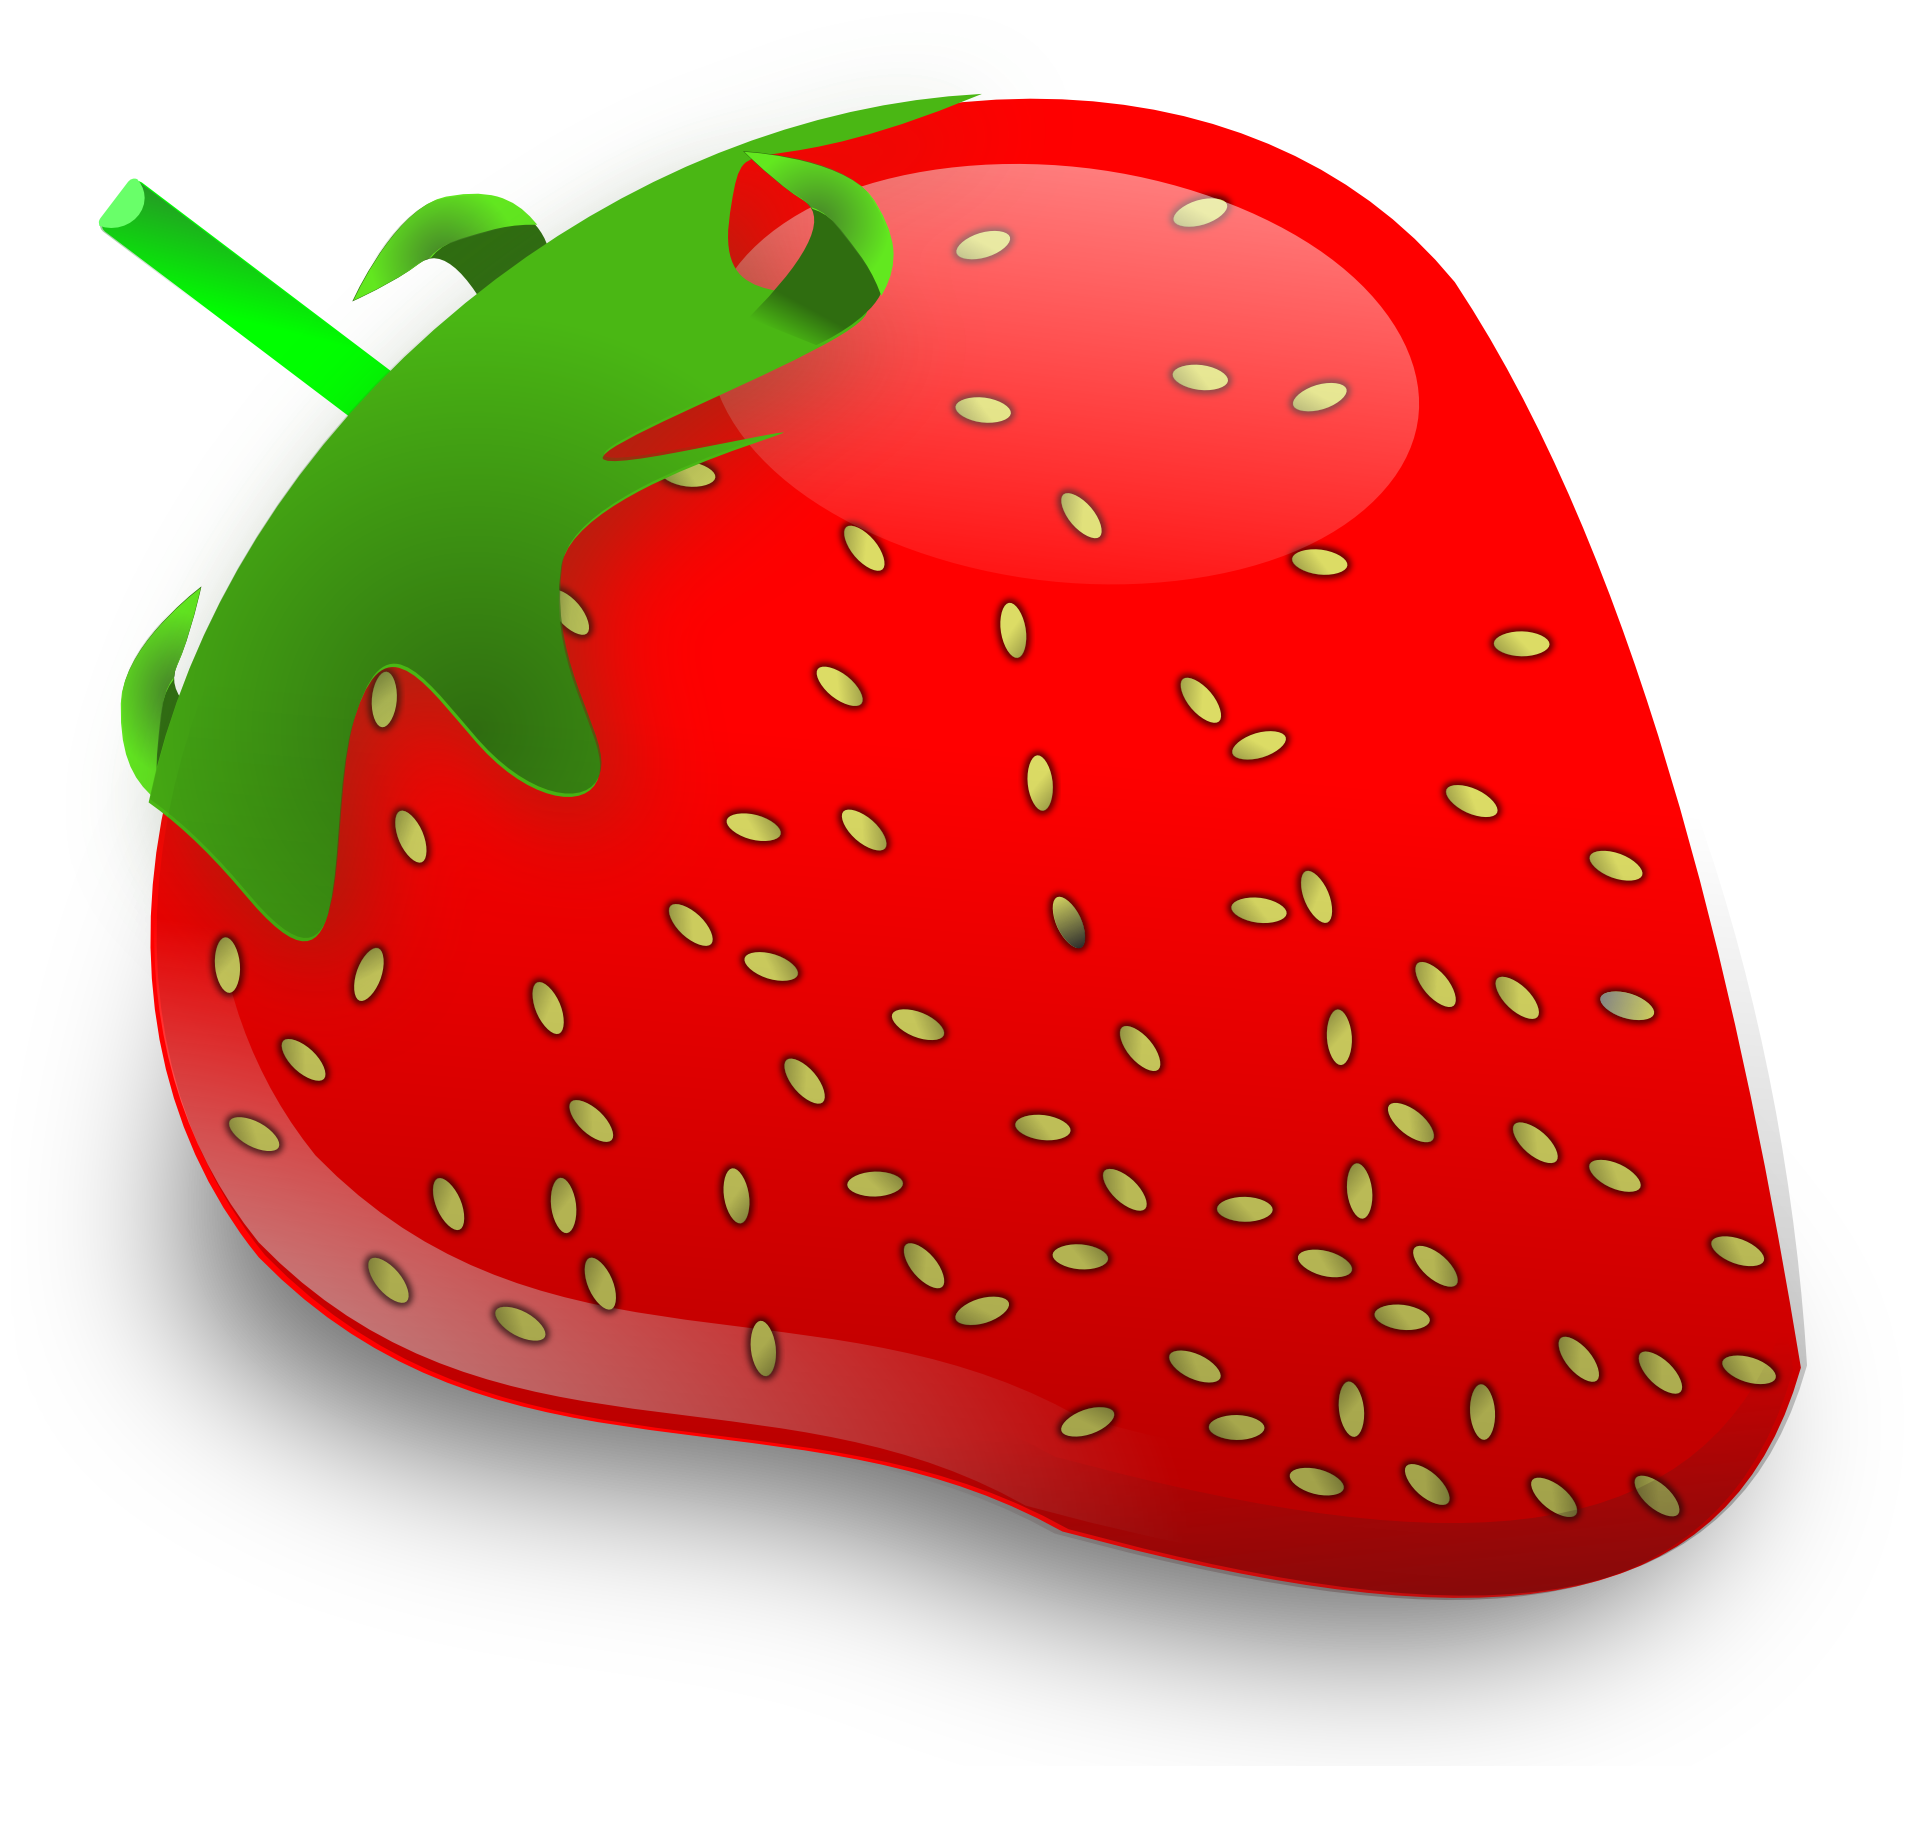 Red color png. Strawberry image purepng free